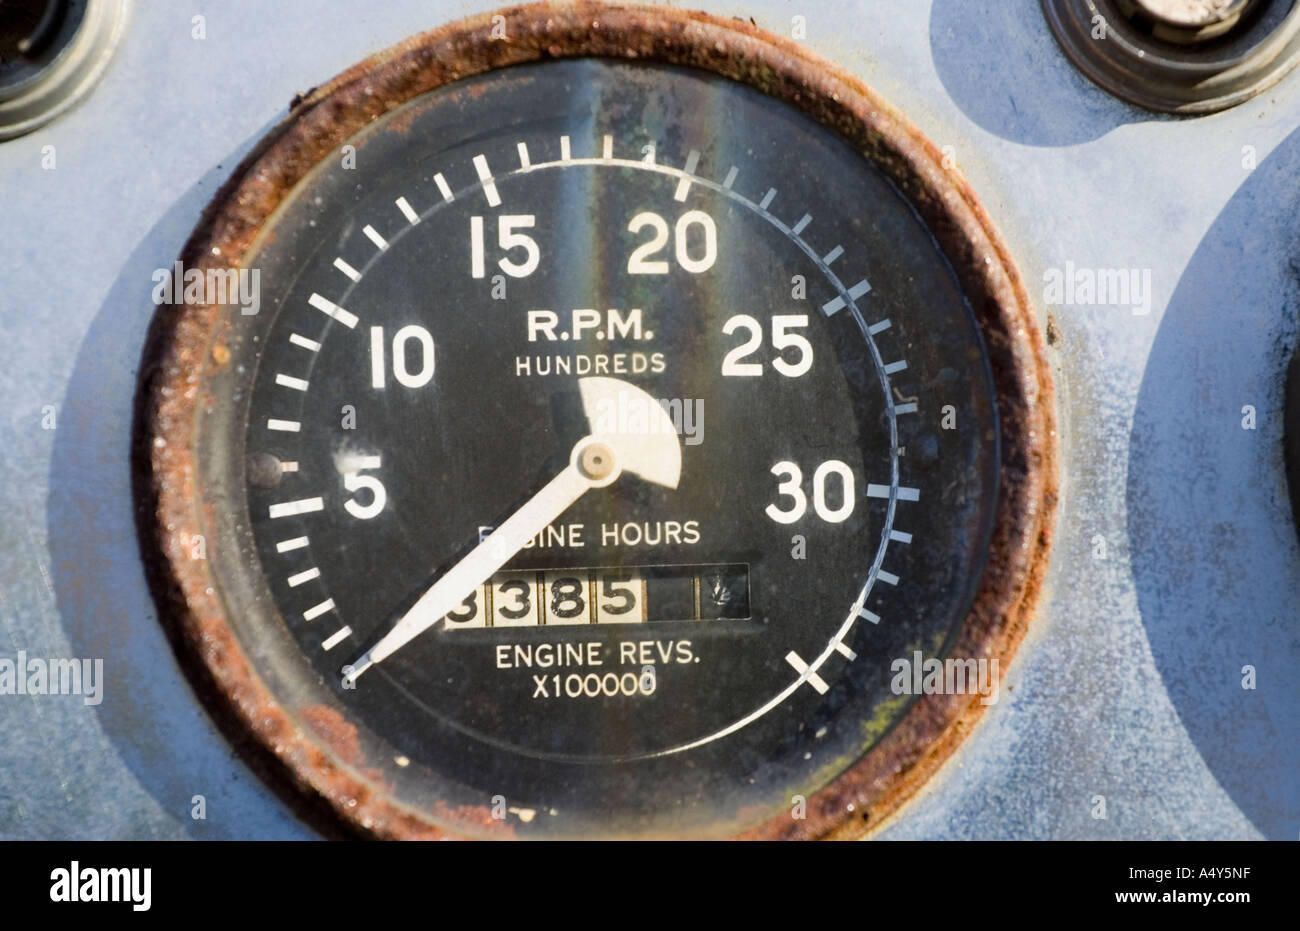 RPM engine guage rusted - Stock Image